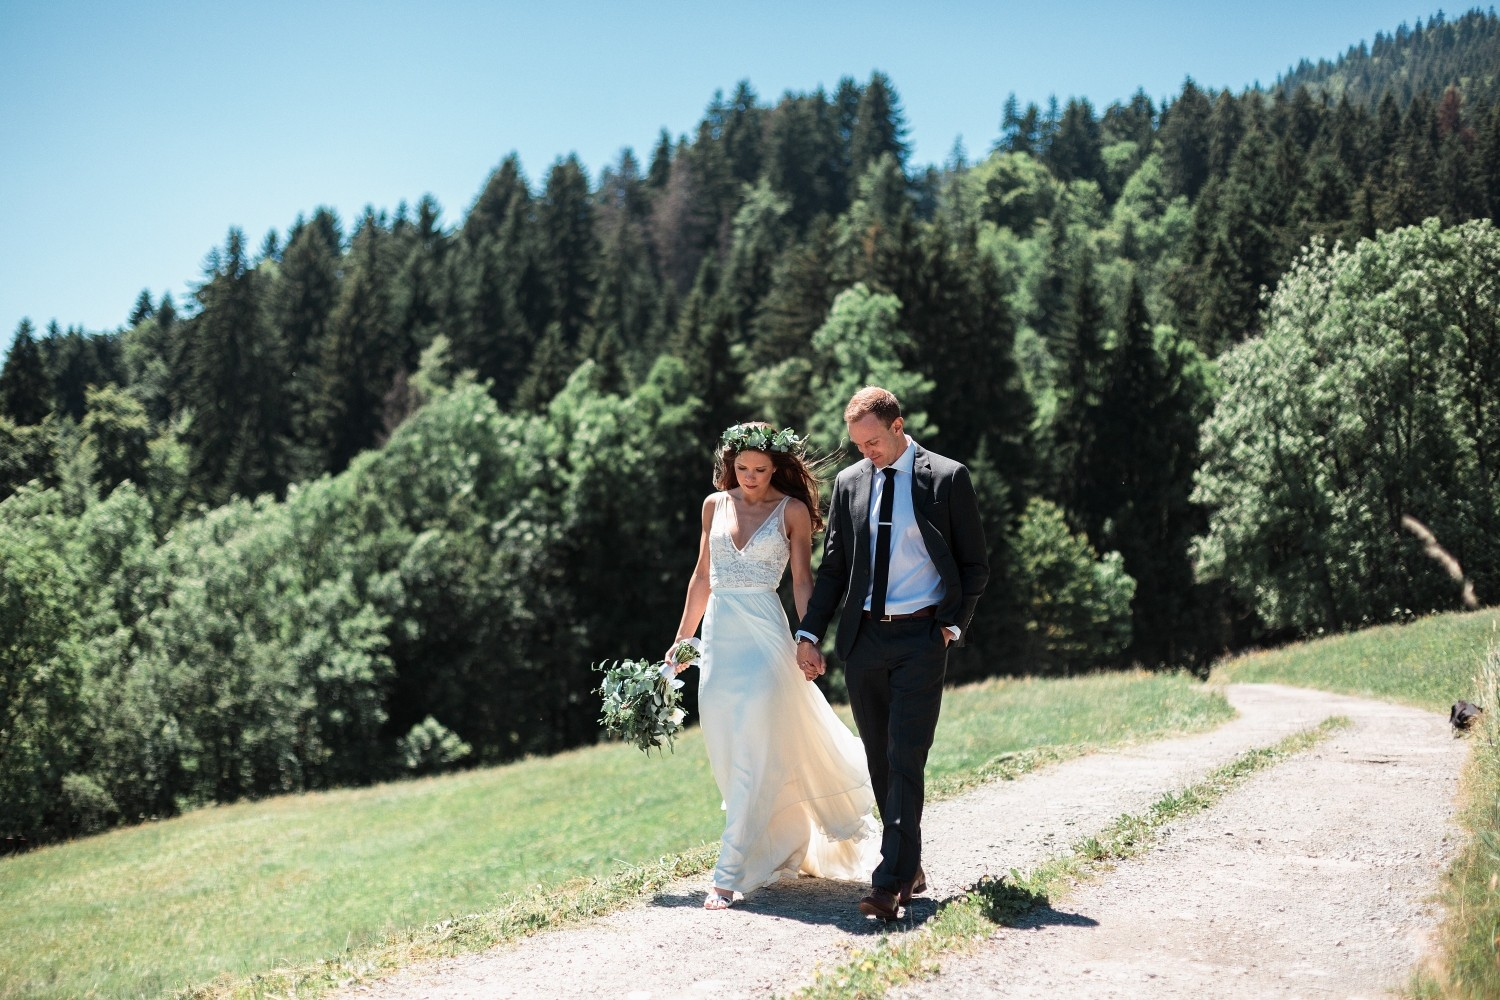 Airsnap | Wedding Photo & Video — Laura & David, French Alps